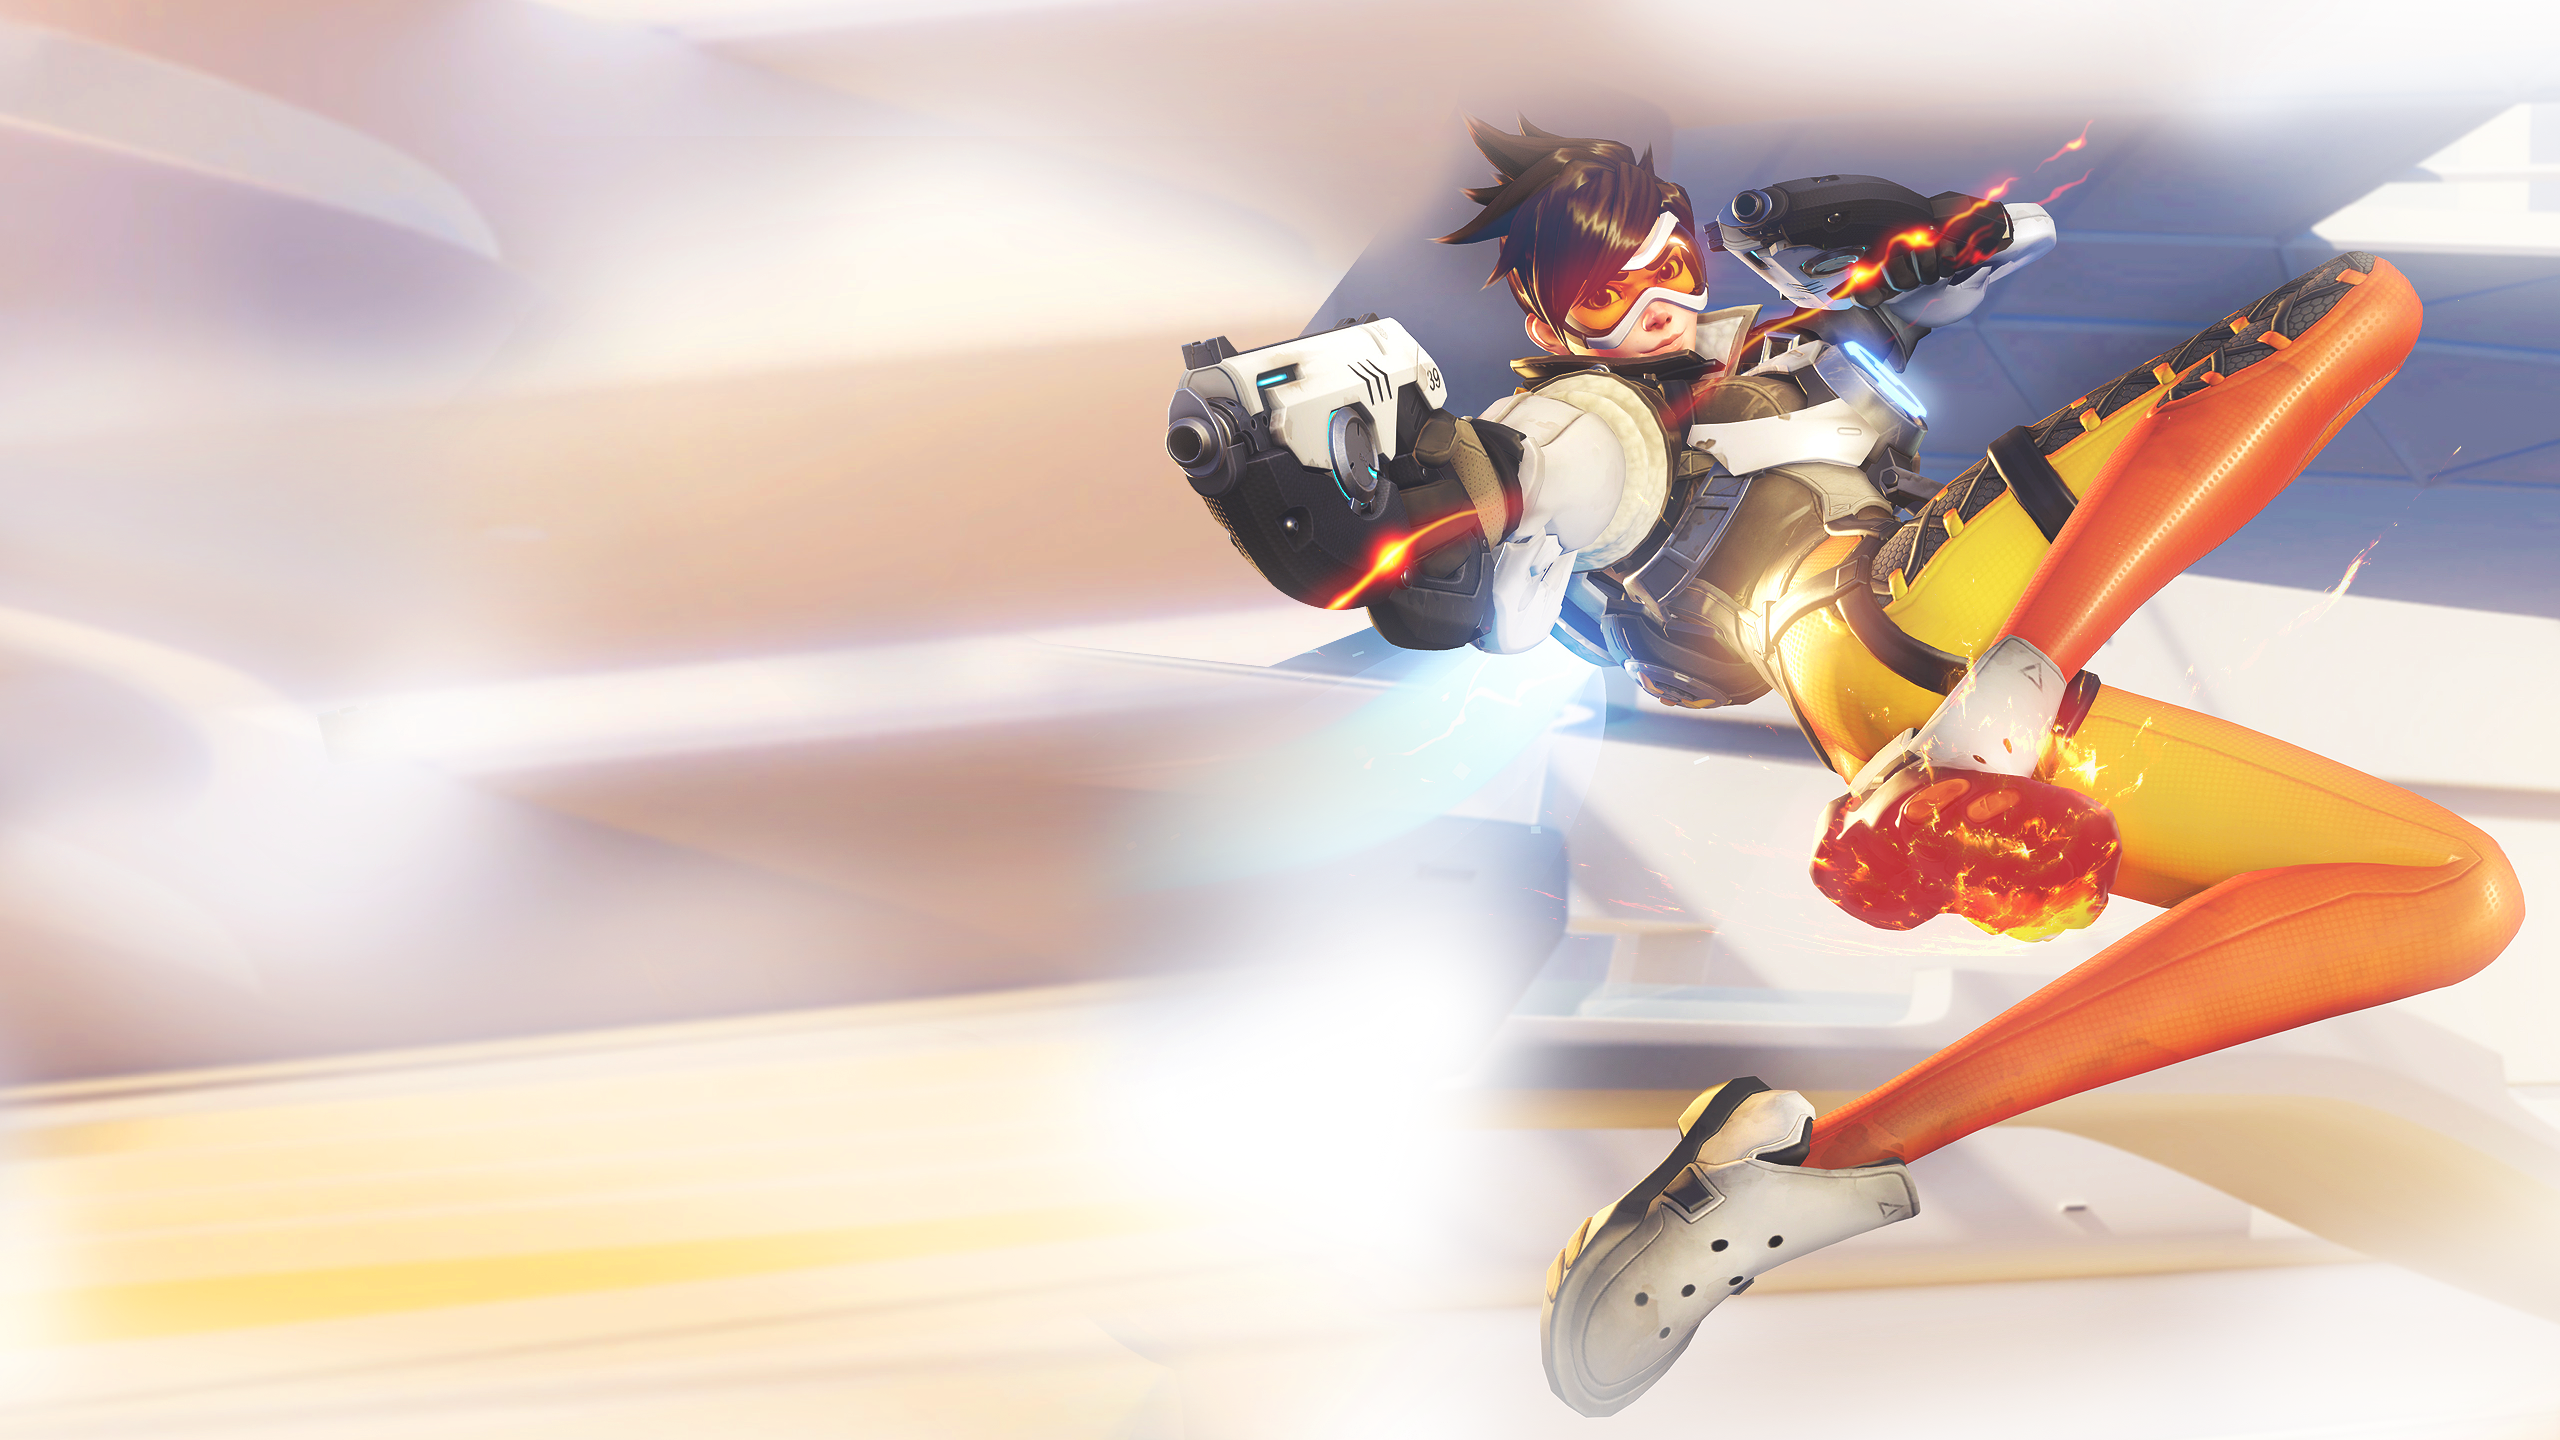 208 Tracer (Overwatch) HD Wallpapers | Backgrounds ...